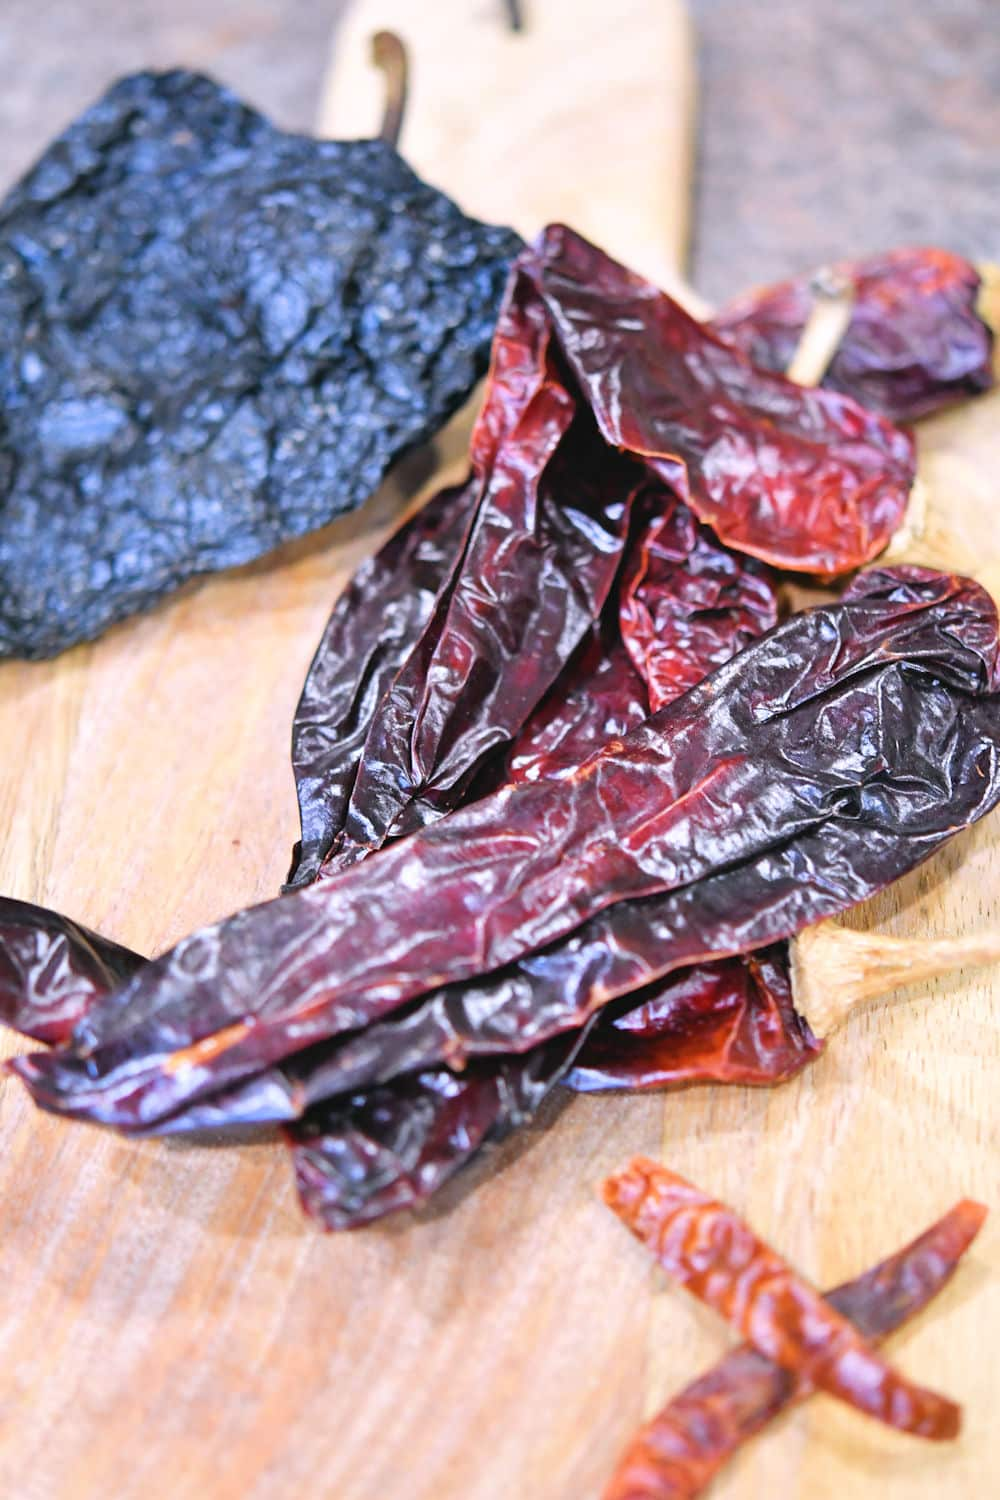 ancho, Anaheim and Arbol chiles on a wooden cutting board